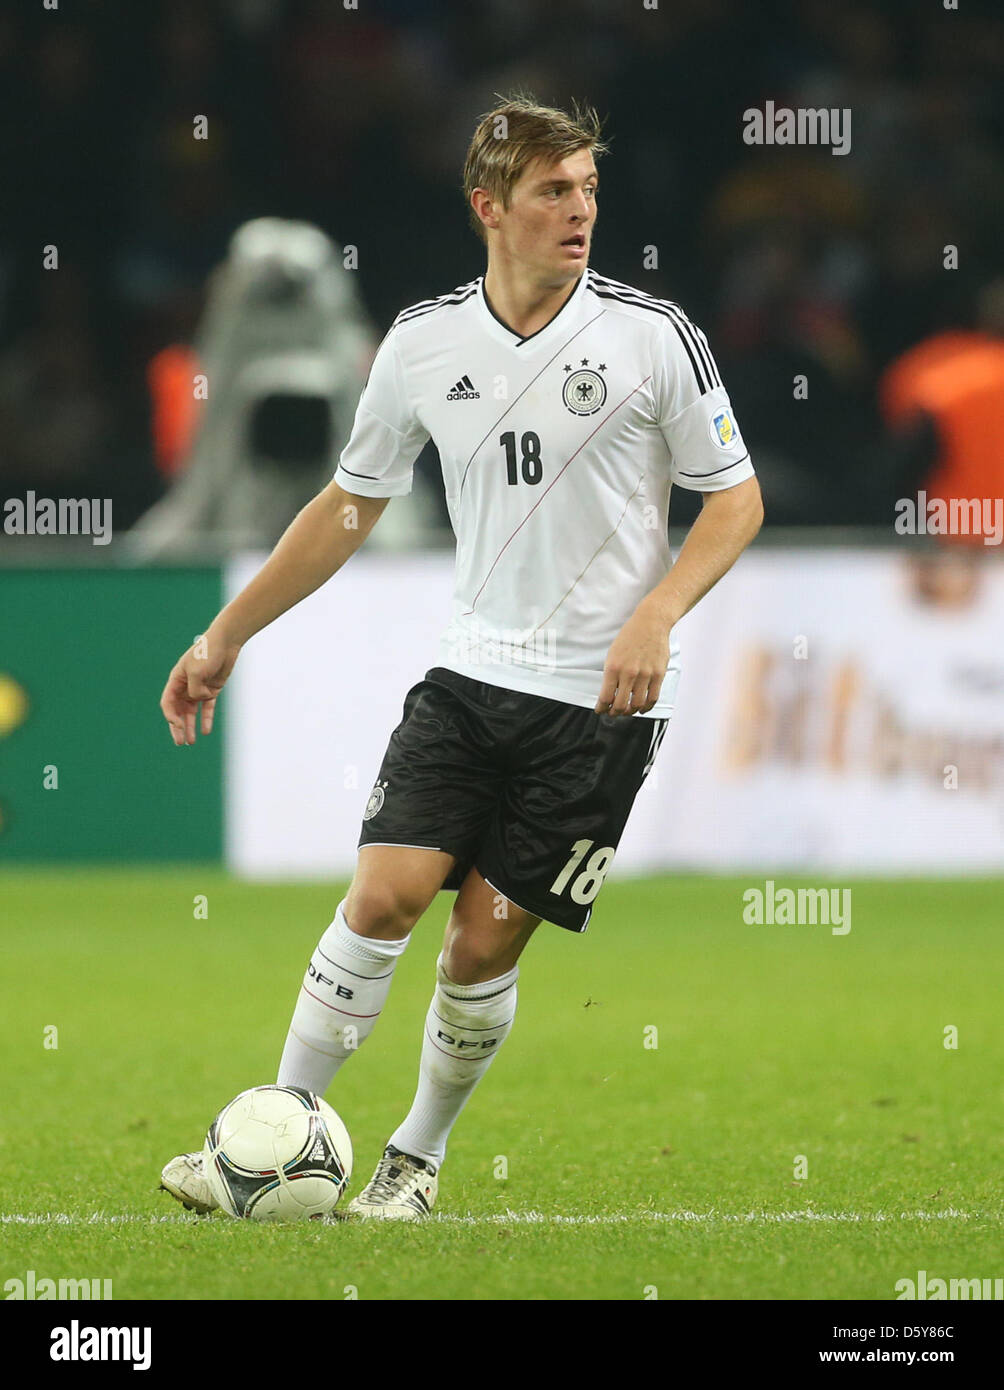 a2959d565cc Germany s Toni Kroos in action during the FIFA World Cup 2014 qualifying  soccer match between Germany and Sweden at Olympic stadium in Berlin